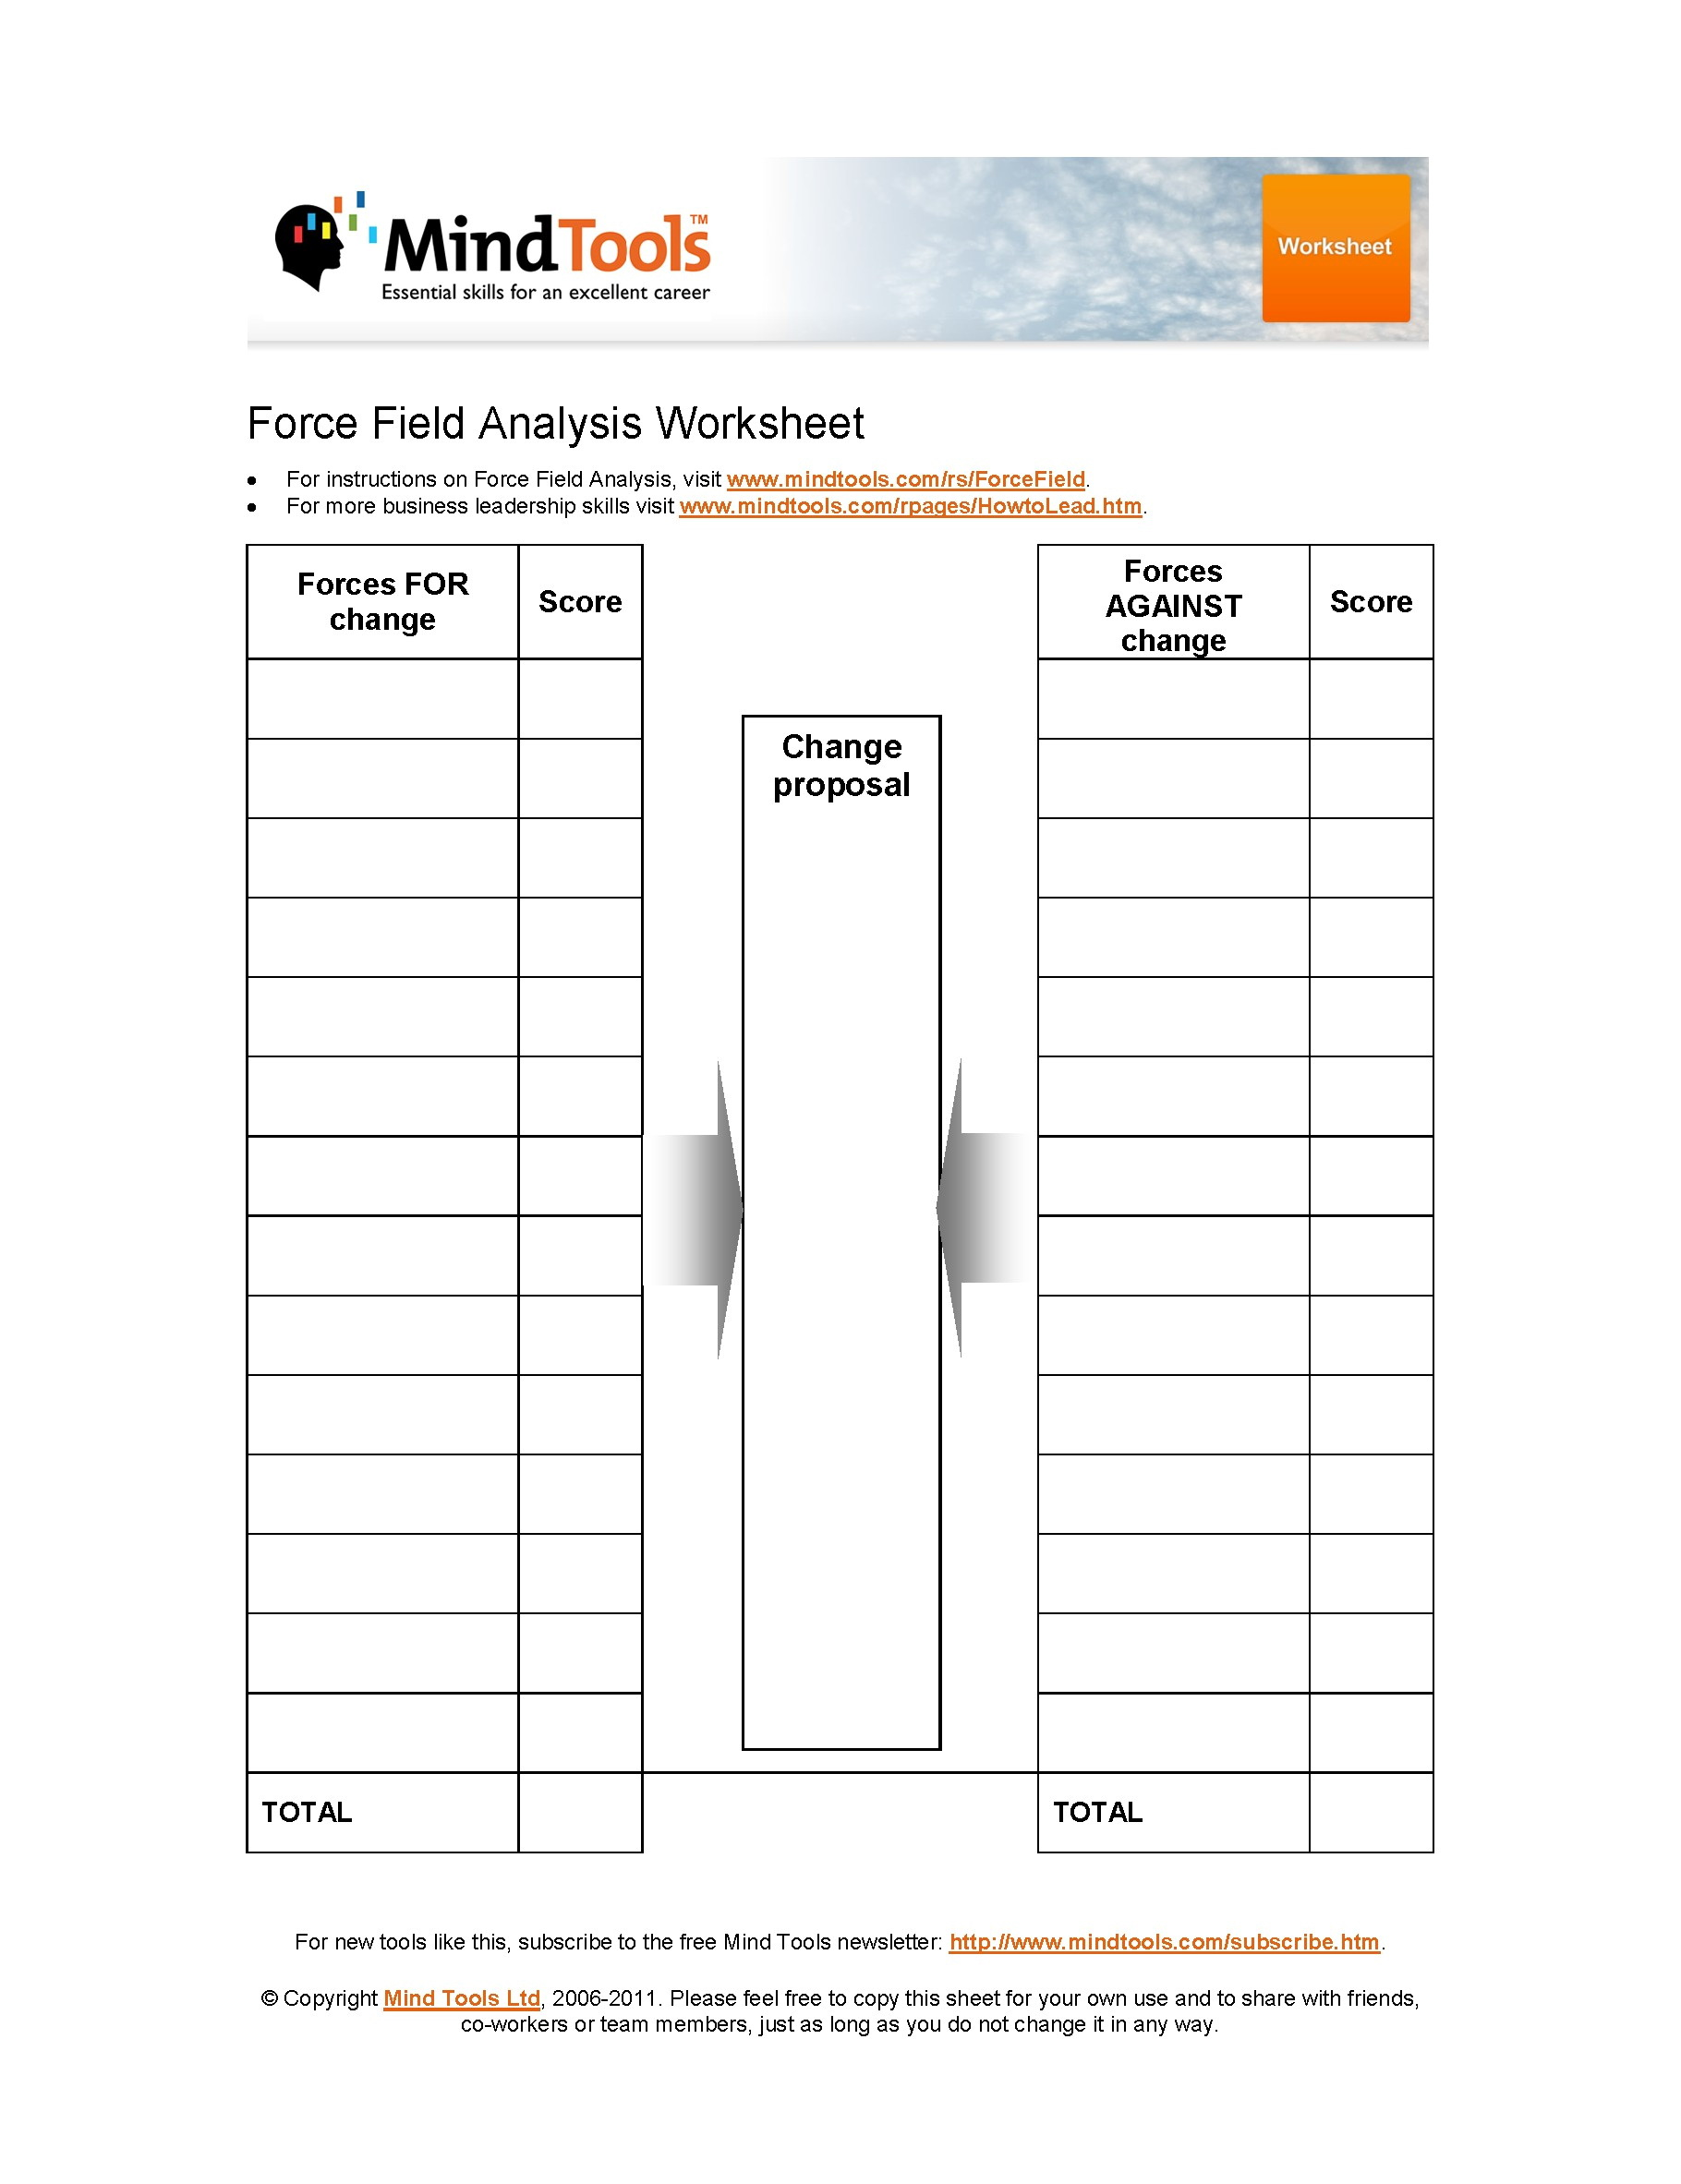 Site Specific Safety Plan Template Awesome Mindtools Provides A